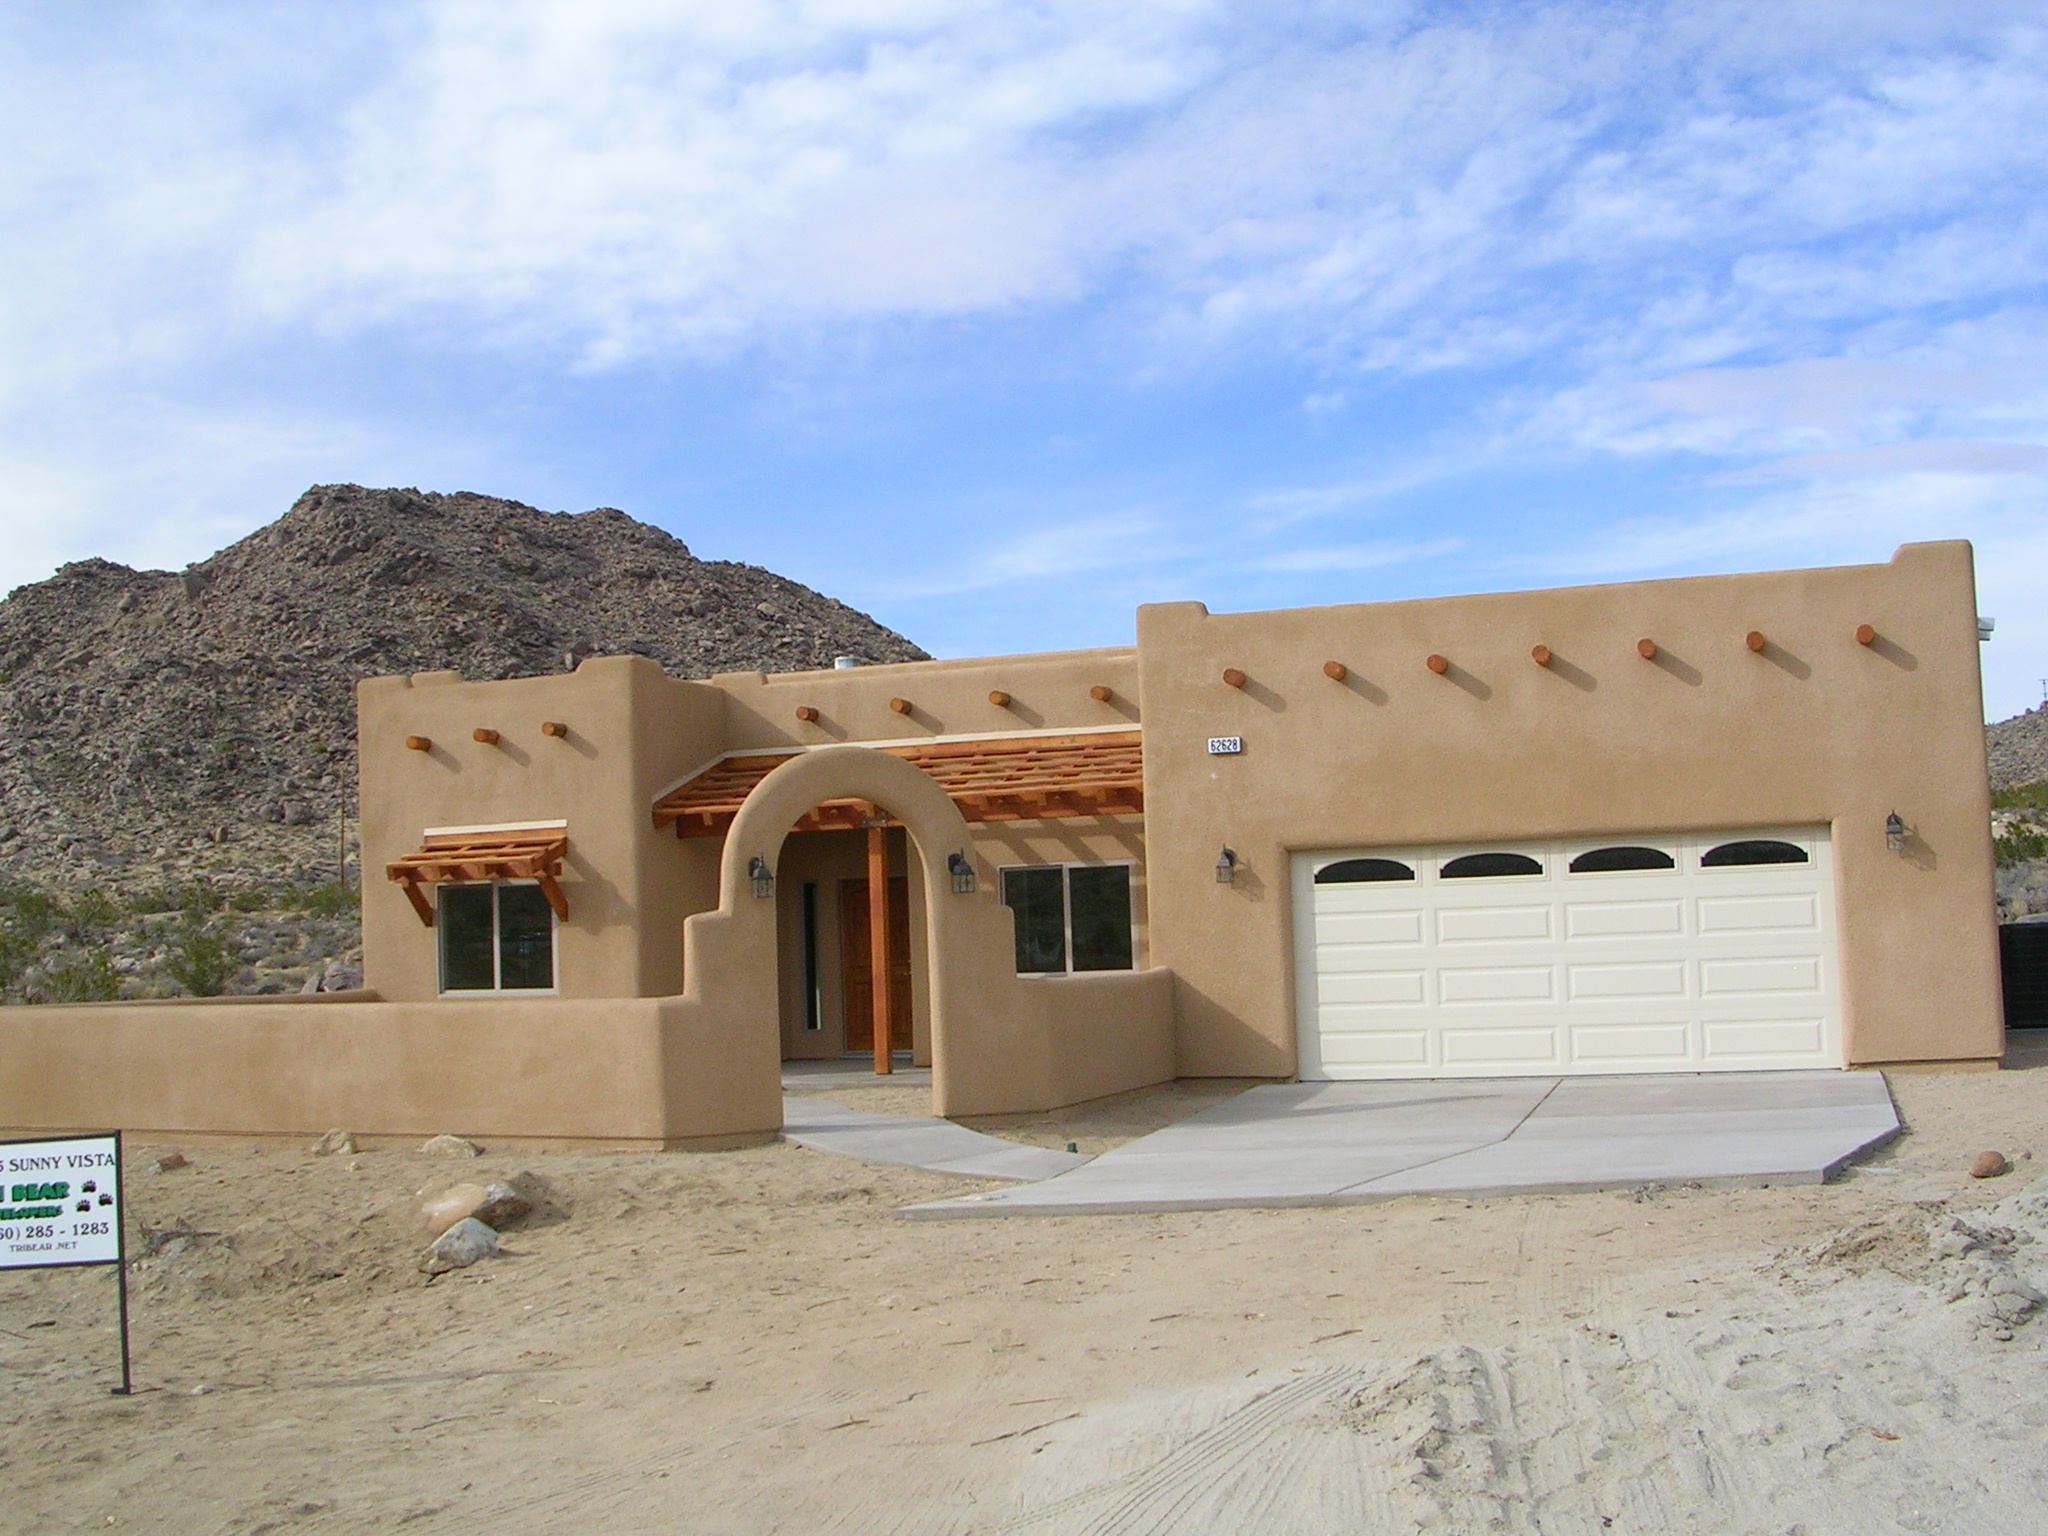 joshua tree real estate yucca valley real estate morongo valley real estate 29 palms real estate. Black Bedroom Furniture Sets. Home Design Ideas